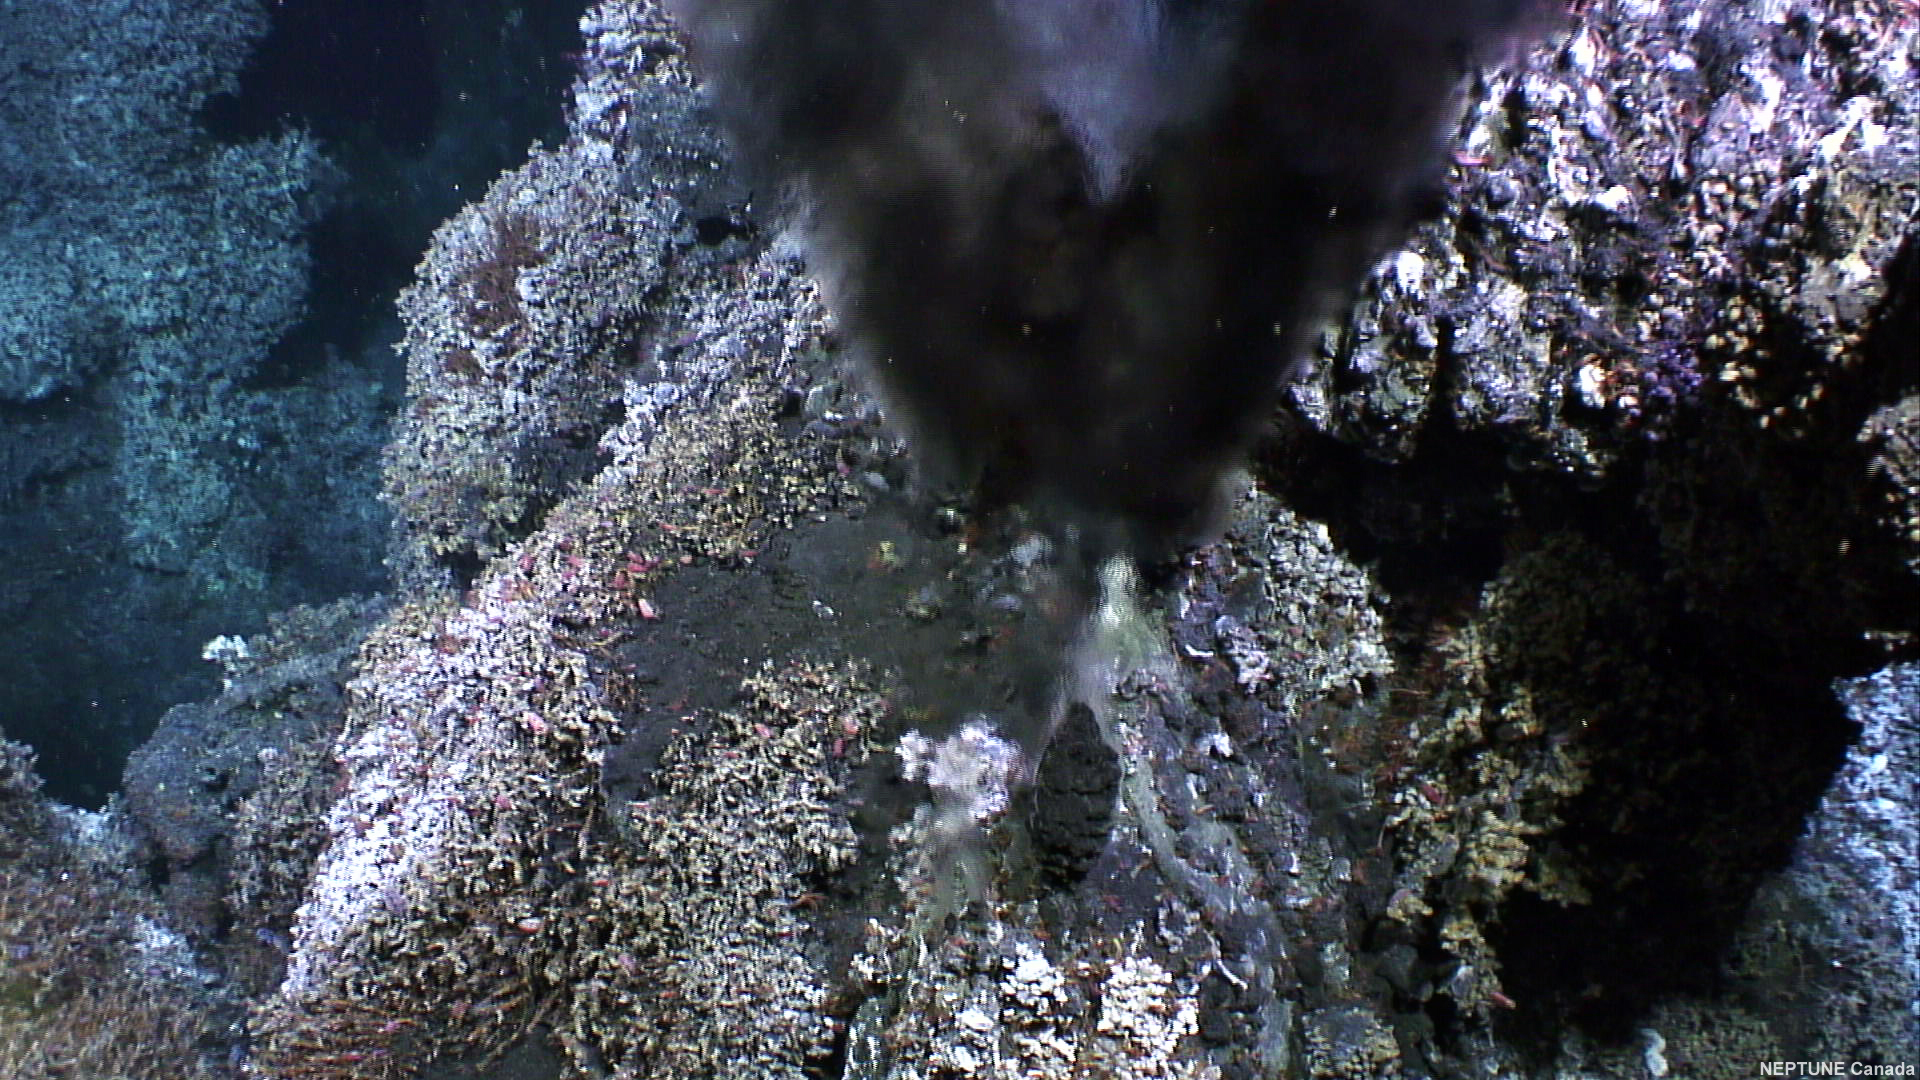 the lost city hydrothermal vents notes The lost city hydrothermal field, an ultramafic-hosted system located 15 km west of the mid-atlantic ridge, has experienced at least 30,000 years of therefore, anme-1 organisms are well dispersed throughout the vent field but are able to thrive only in chimneys that are not venting high-temperature, high-ph fluids,.